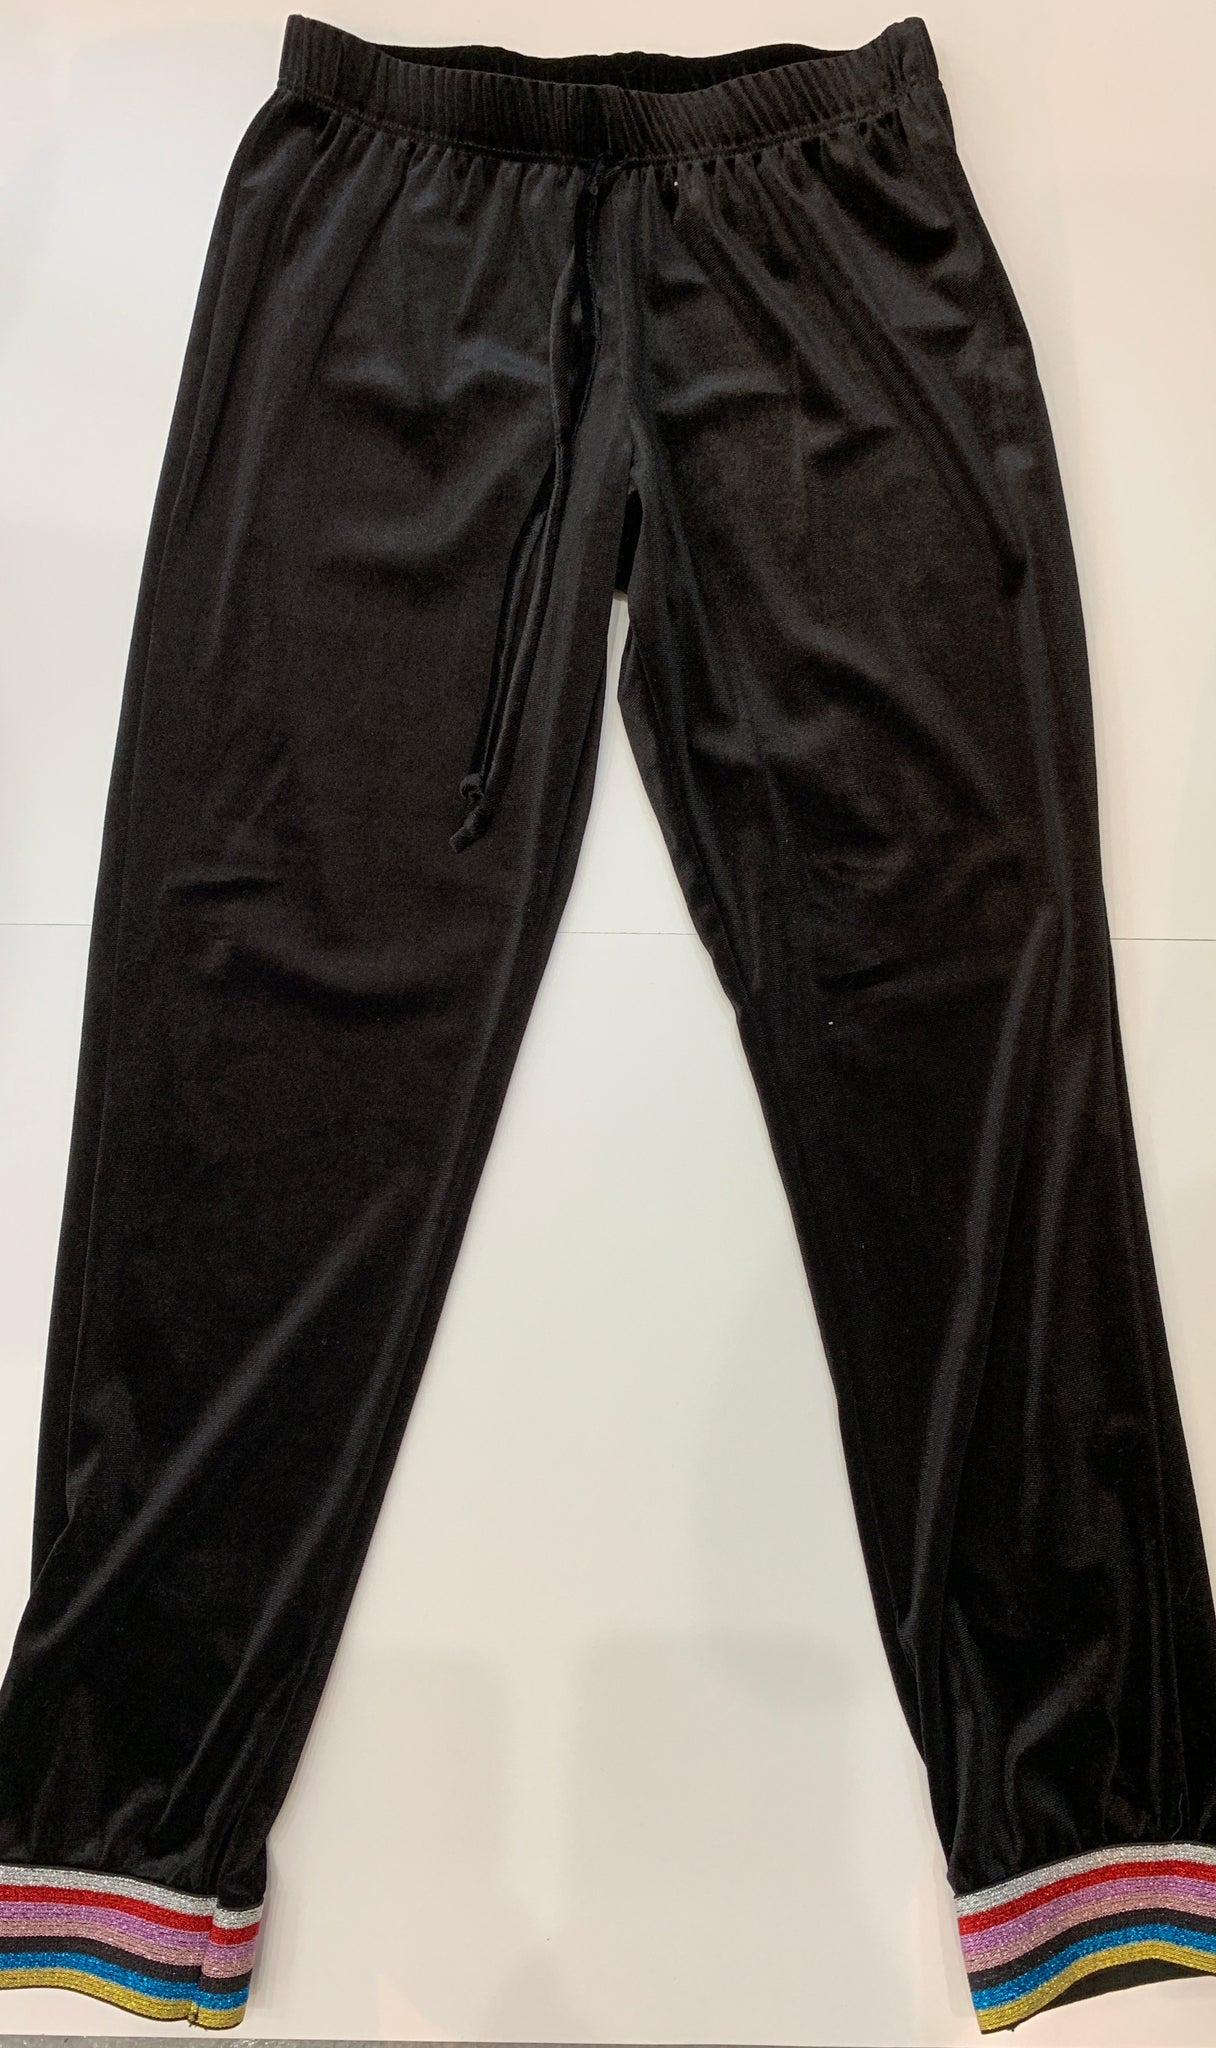 VINTAGE HAVANA Girls Black Velvet Pants with Rainbow Striped Cuffs